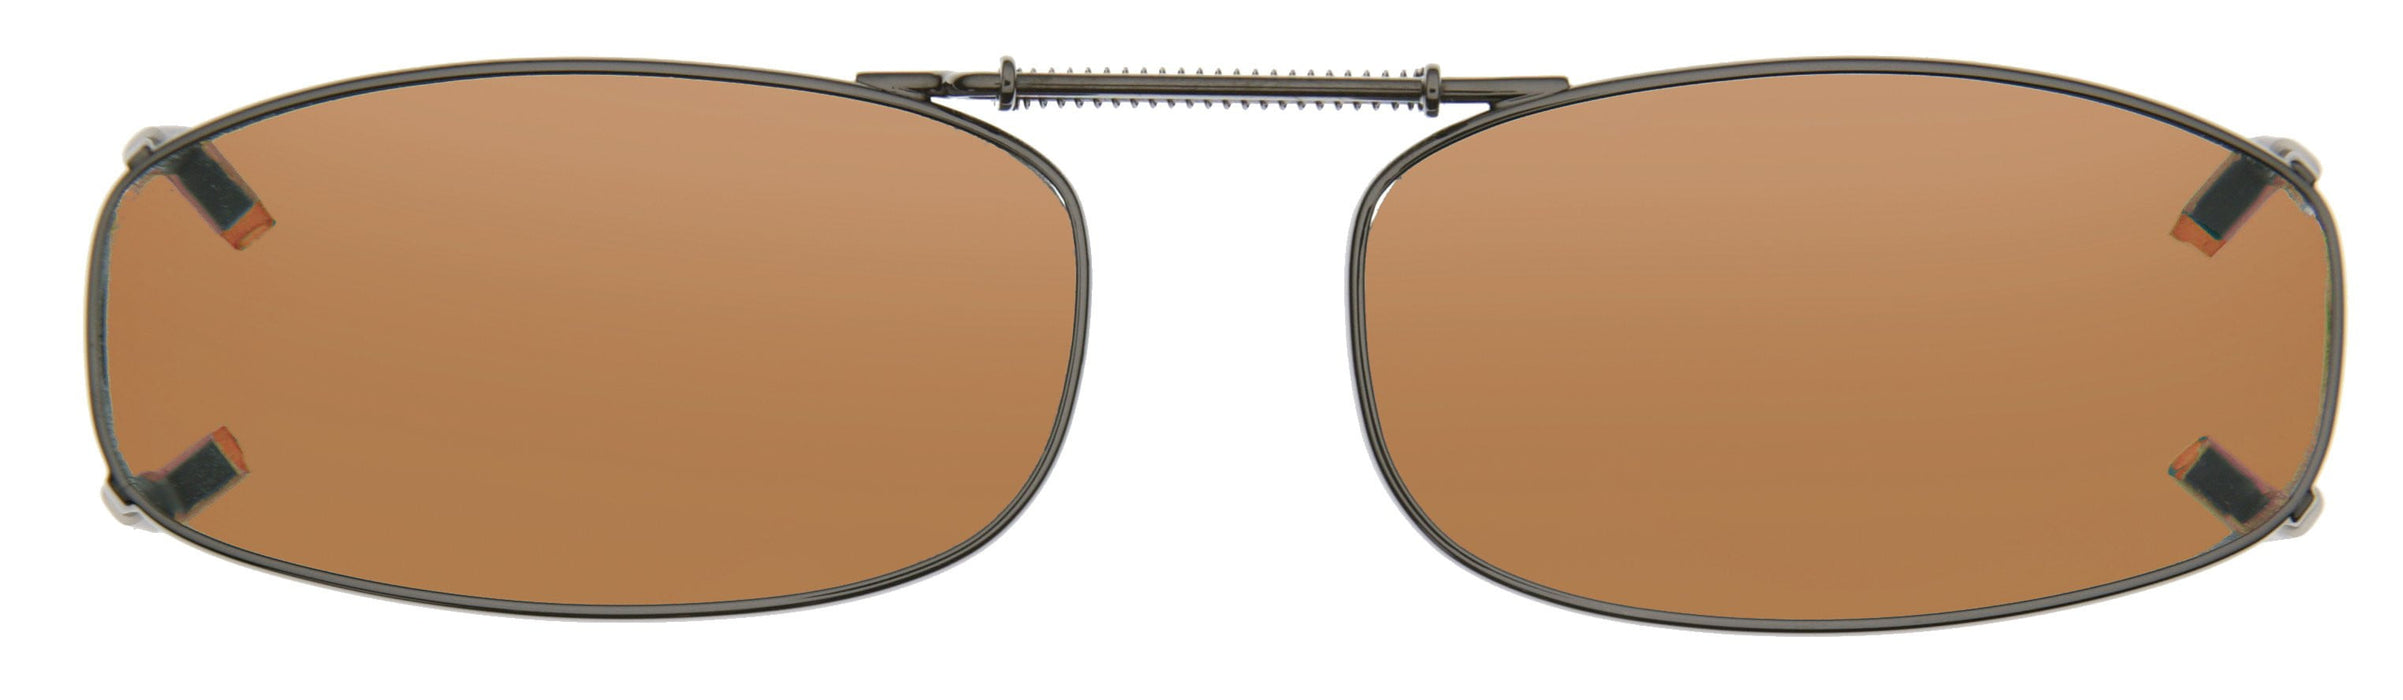 Cocoons Clip-Ons Rectangle REC5 Sunglasses